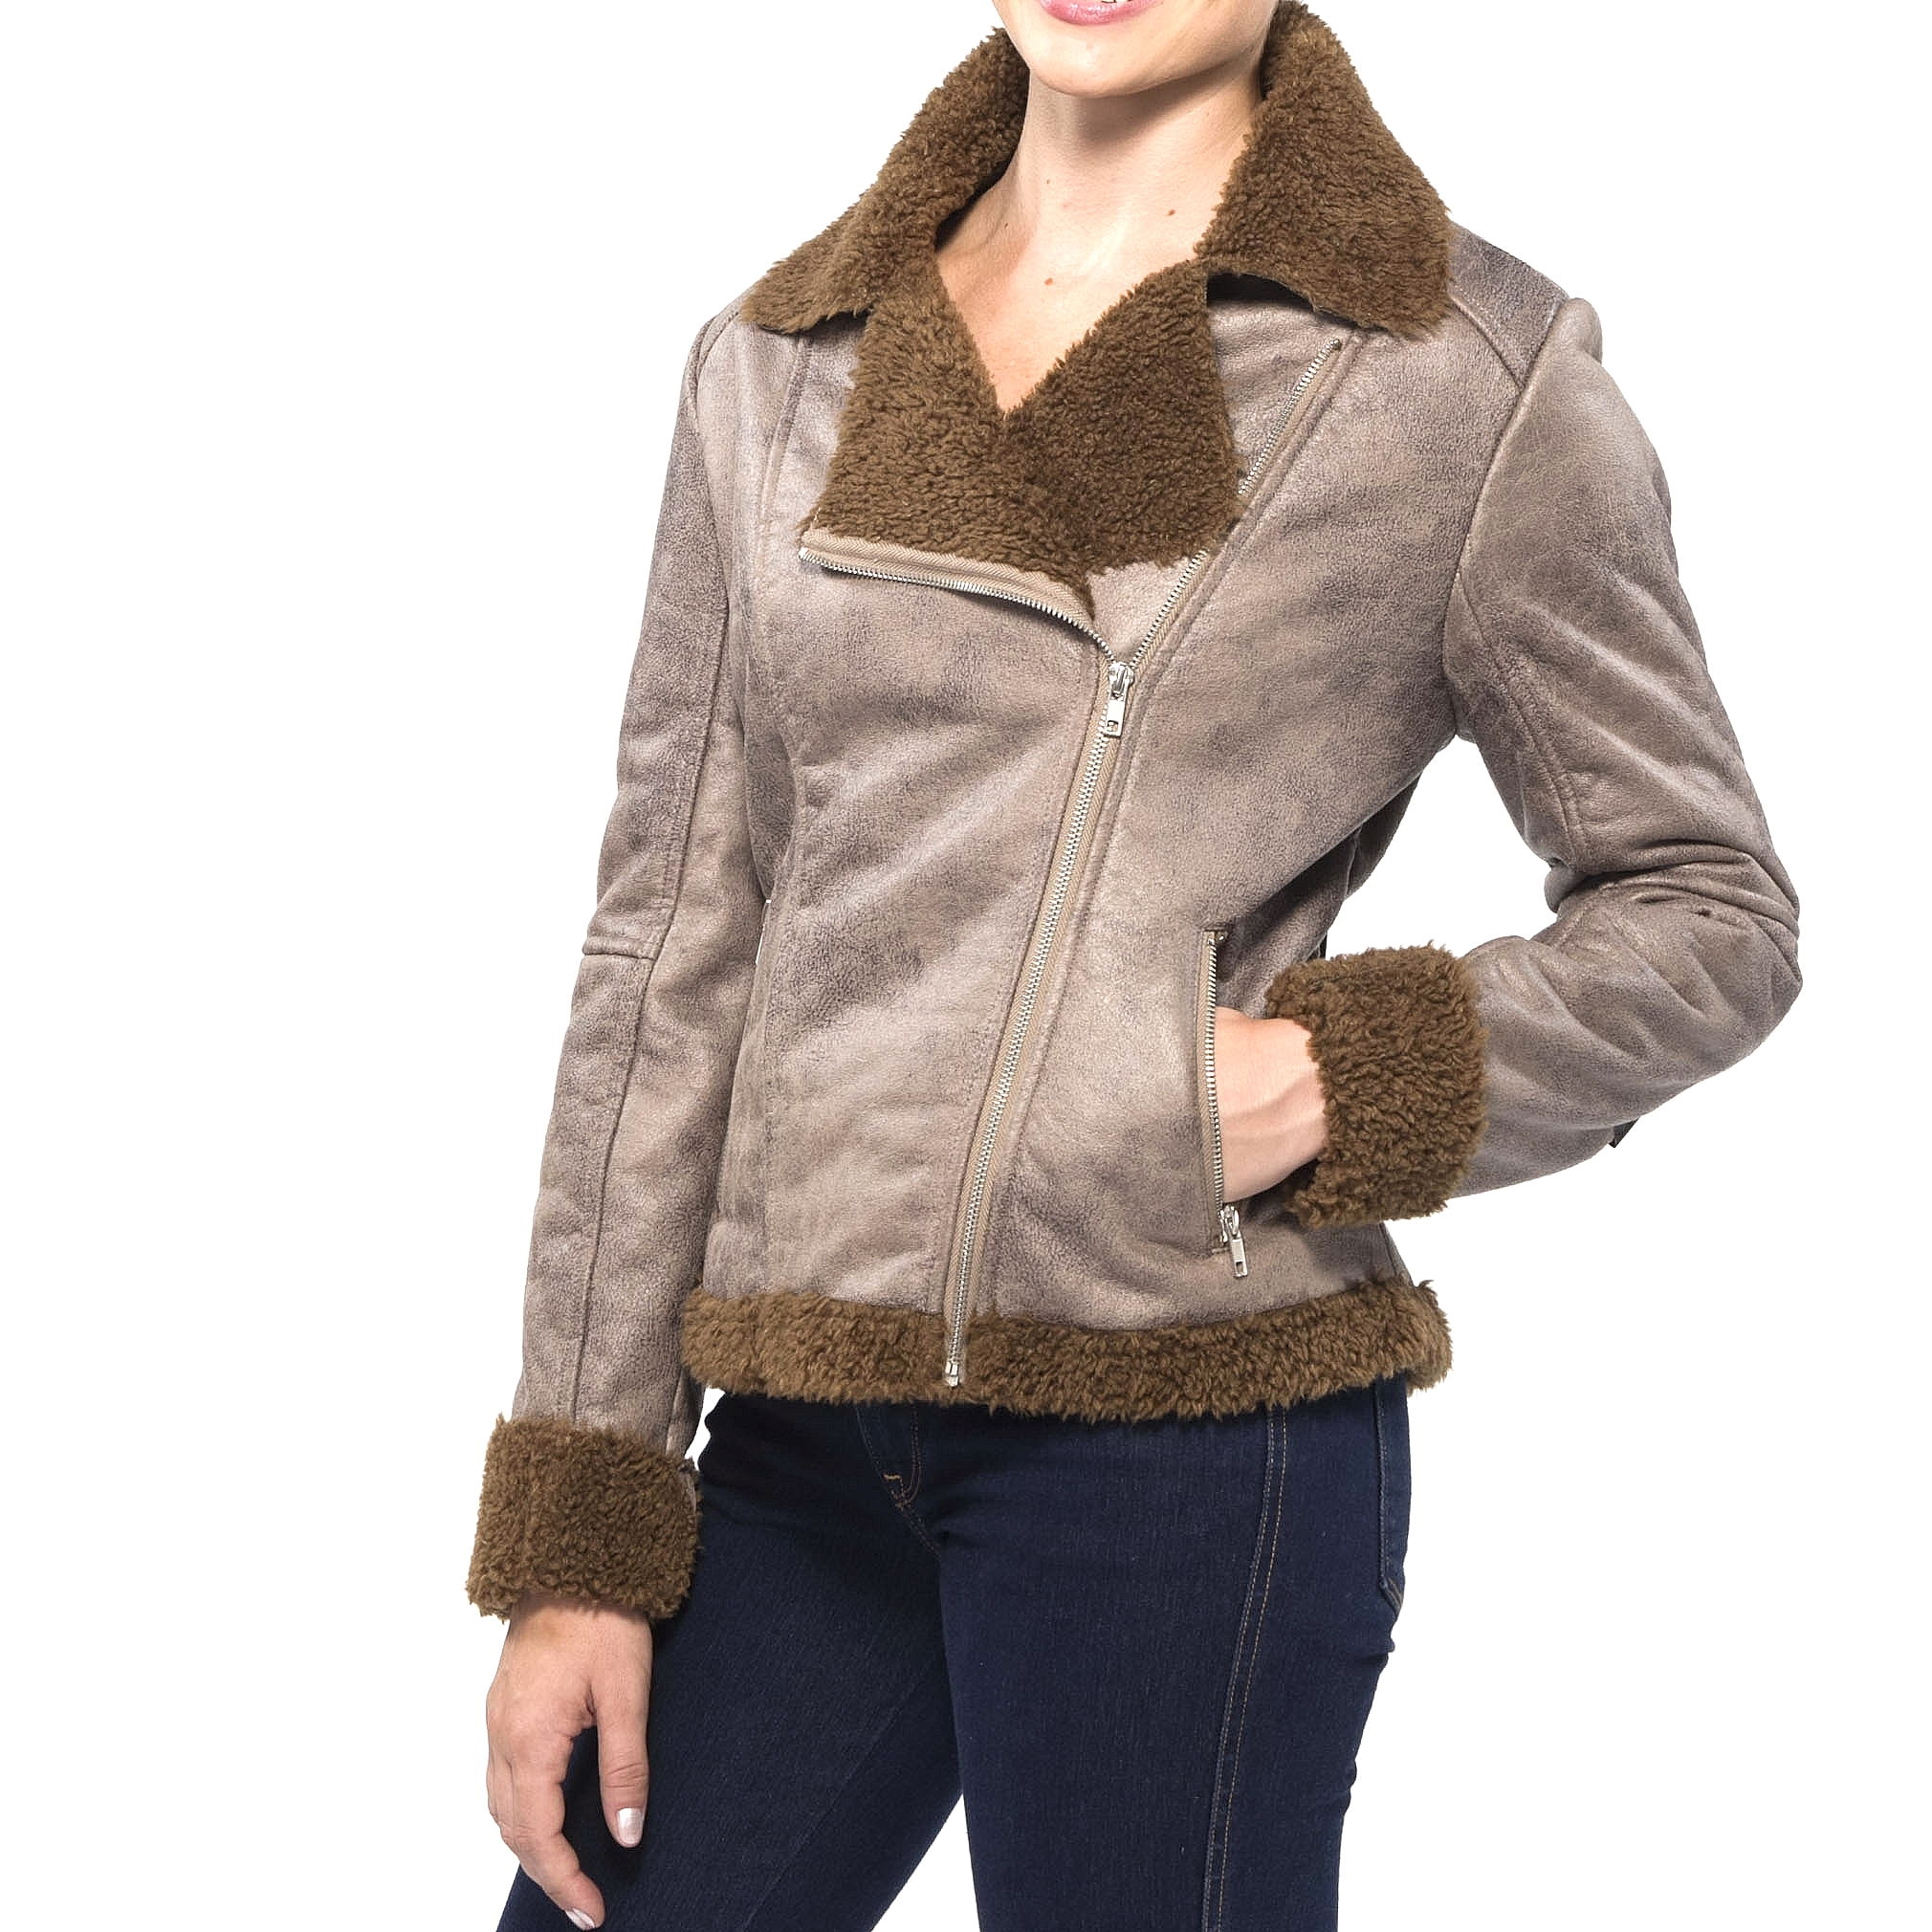 Faux shearling coats women